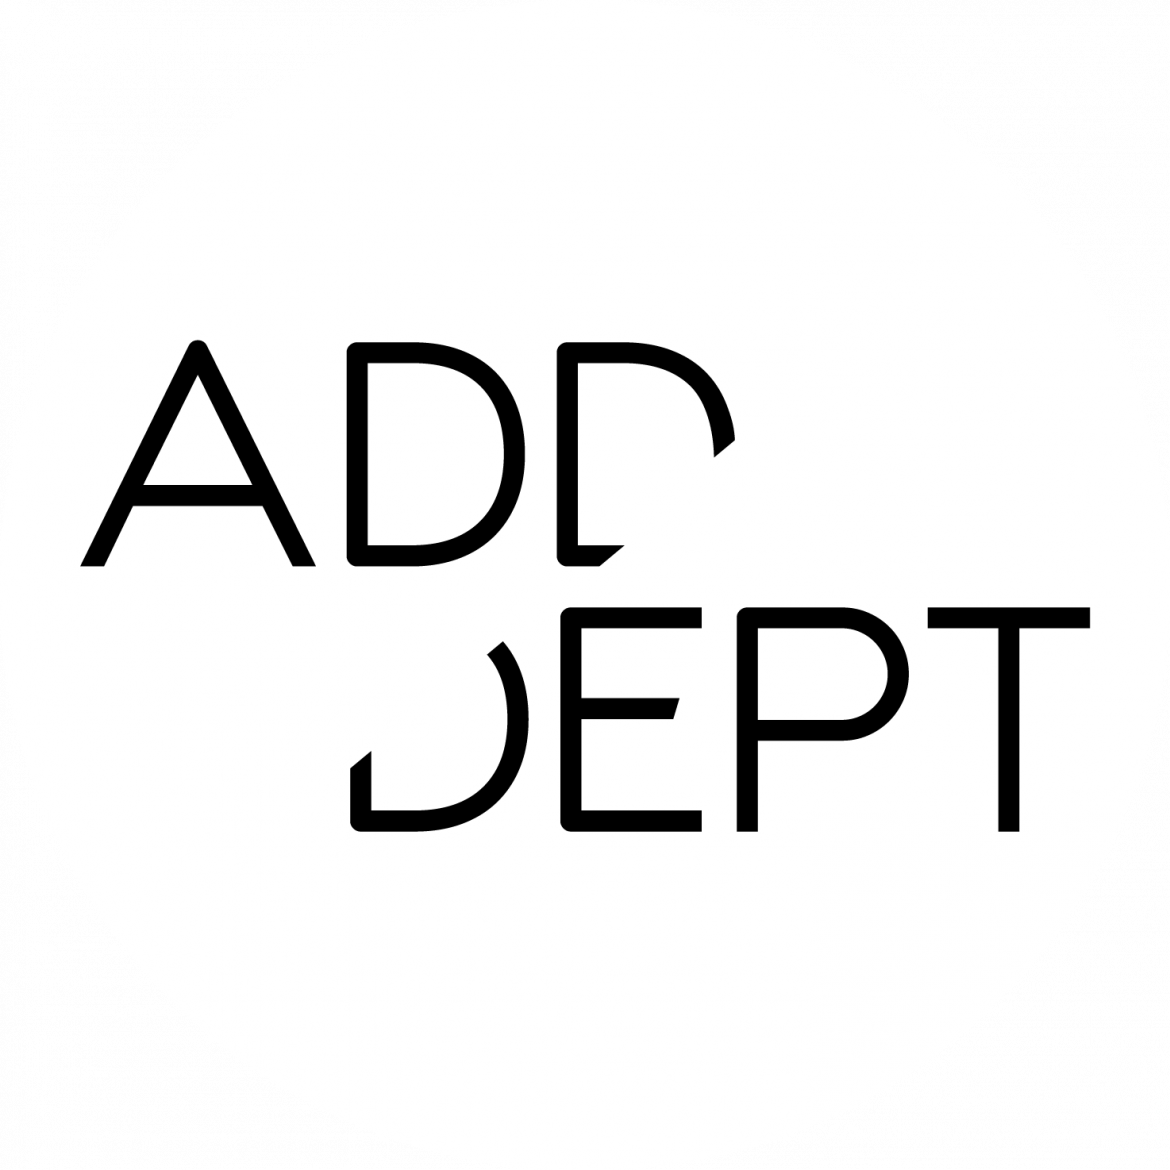 Add-dept.png